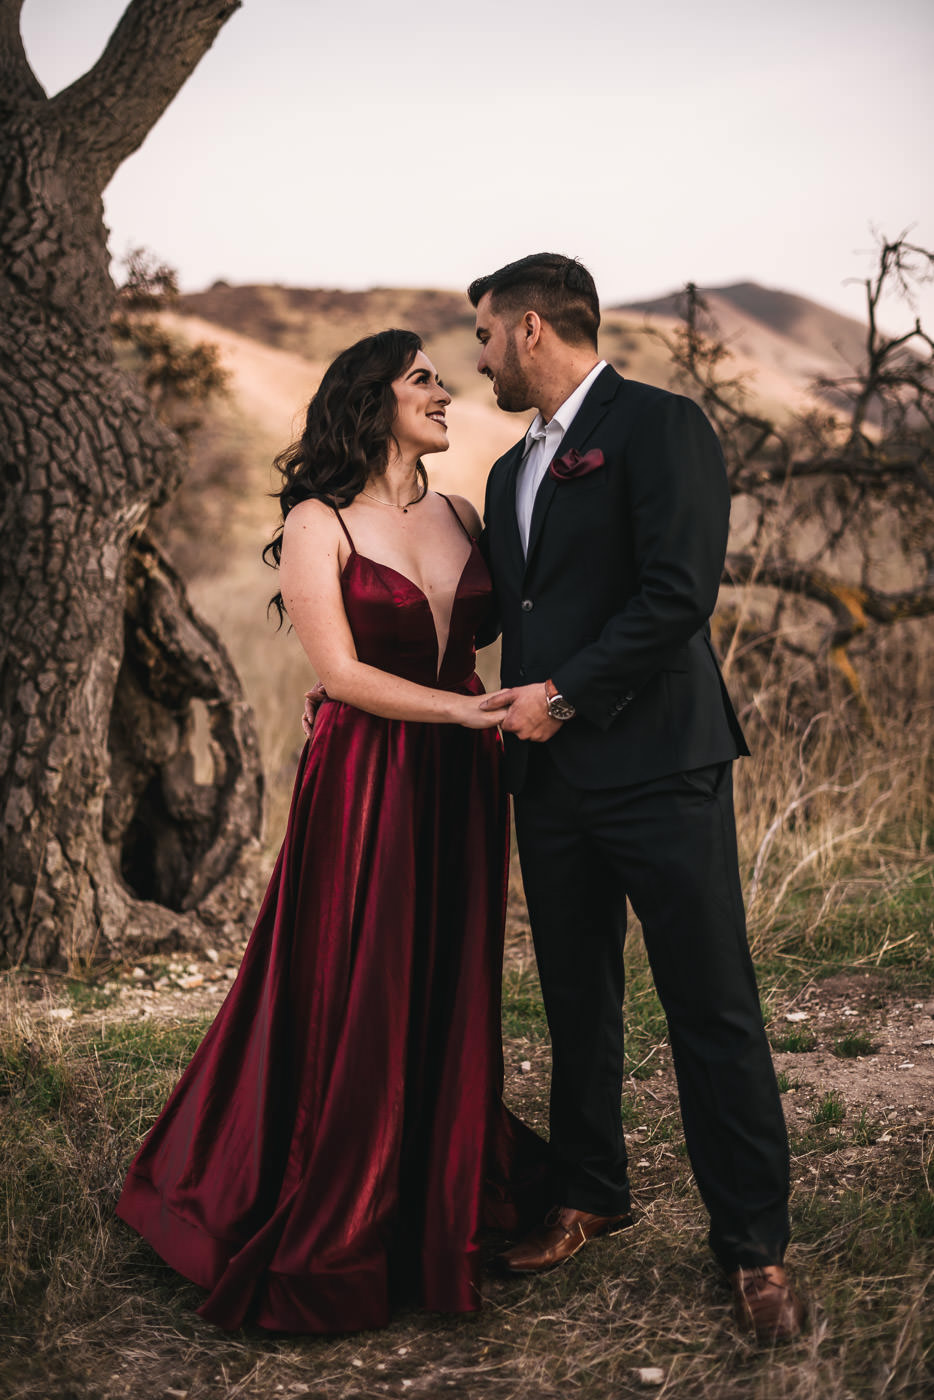 Beautiful engagement photography in Malibu California.